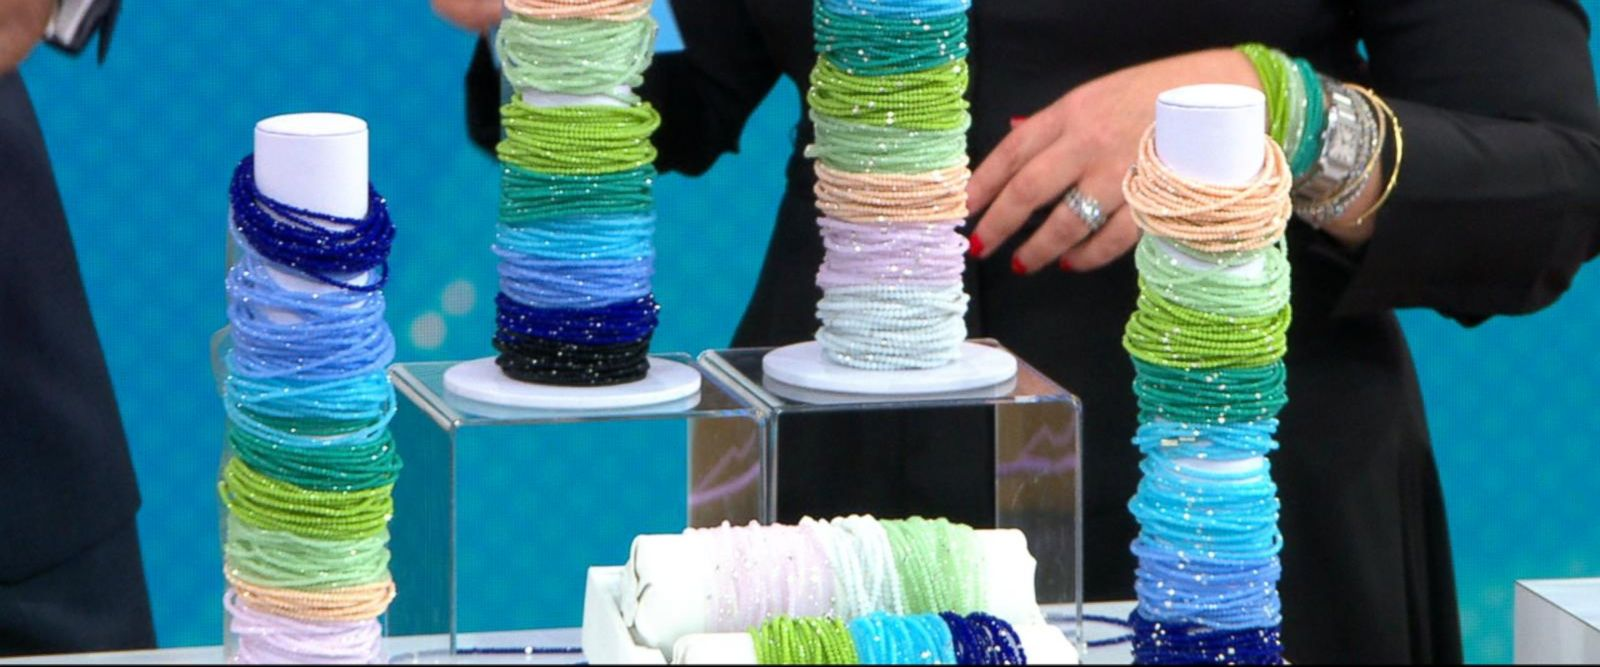 VIDEO: Deal and Steals: The best bargains on all things that sparkle and shine